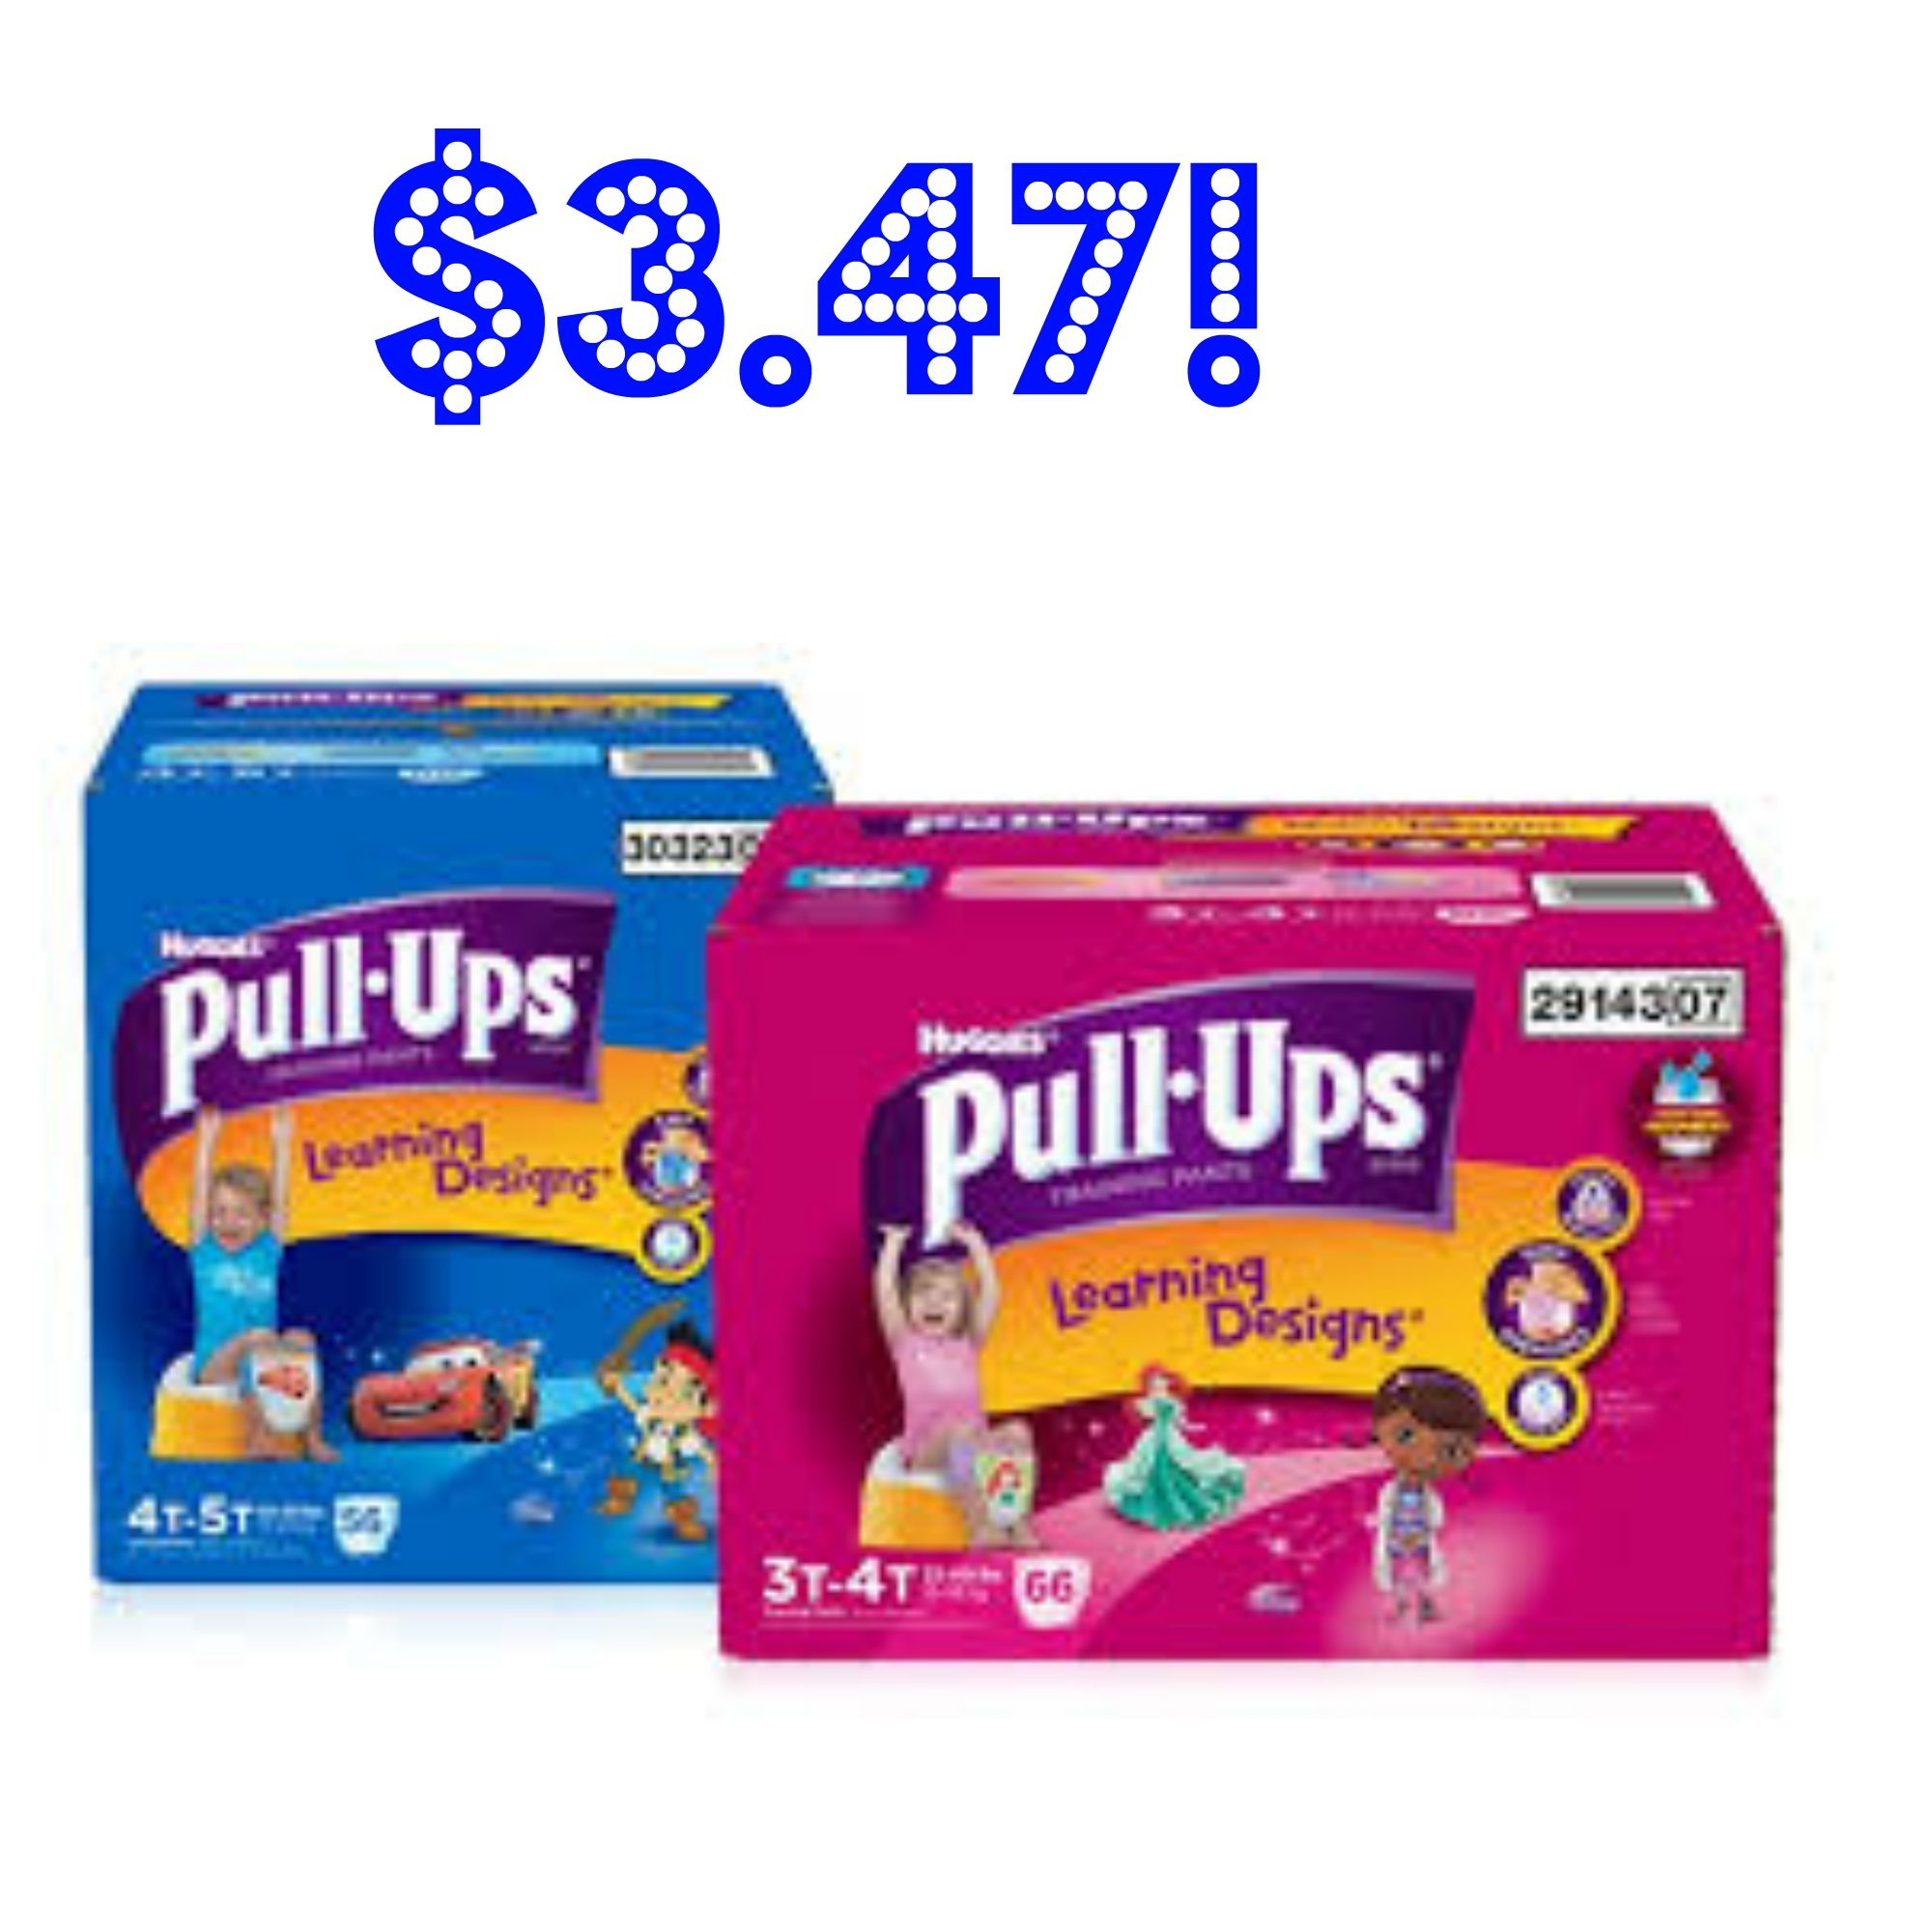 Walmart: Huggies Pull-Ups Training Pants Jumbo Pack Just $3.47! - Free Printable Coupons For Huggies Pull Ups